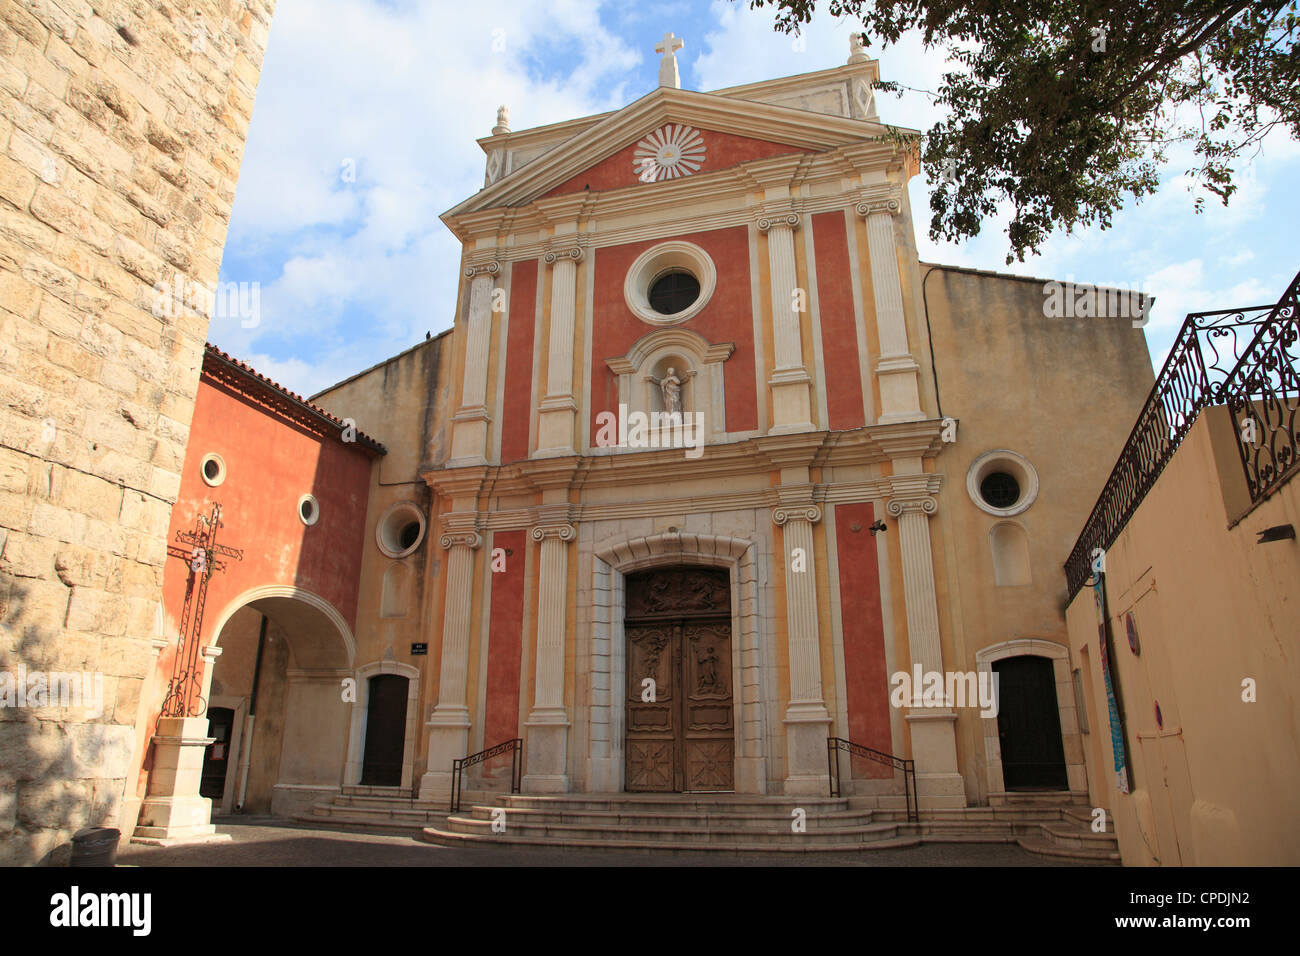 Church of the Immaculate Conception, Old Town, Vieil Antibes, Antibes, Cote d'Azur, French Riviera, Provence, - Stock Image